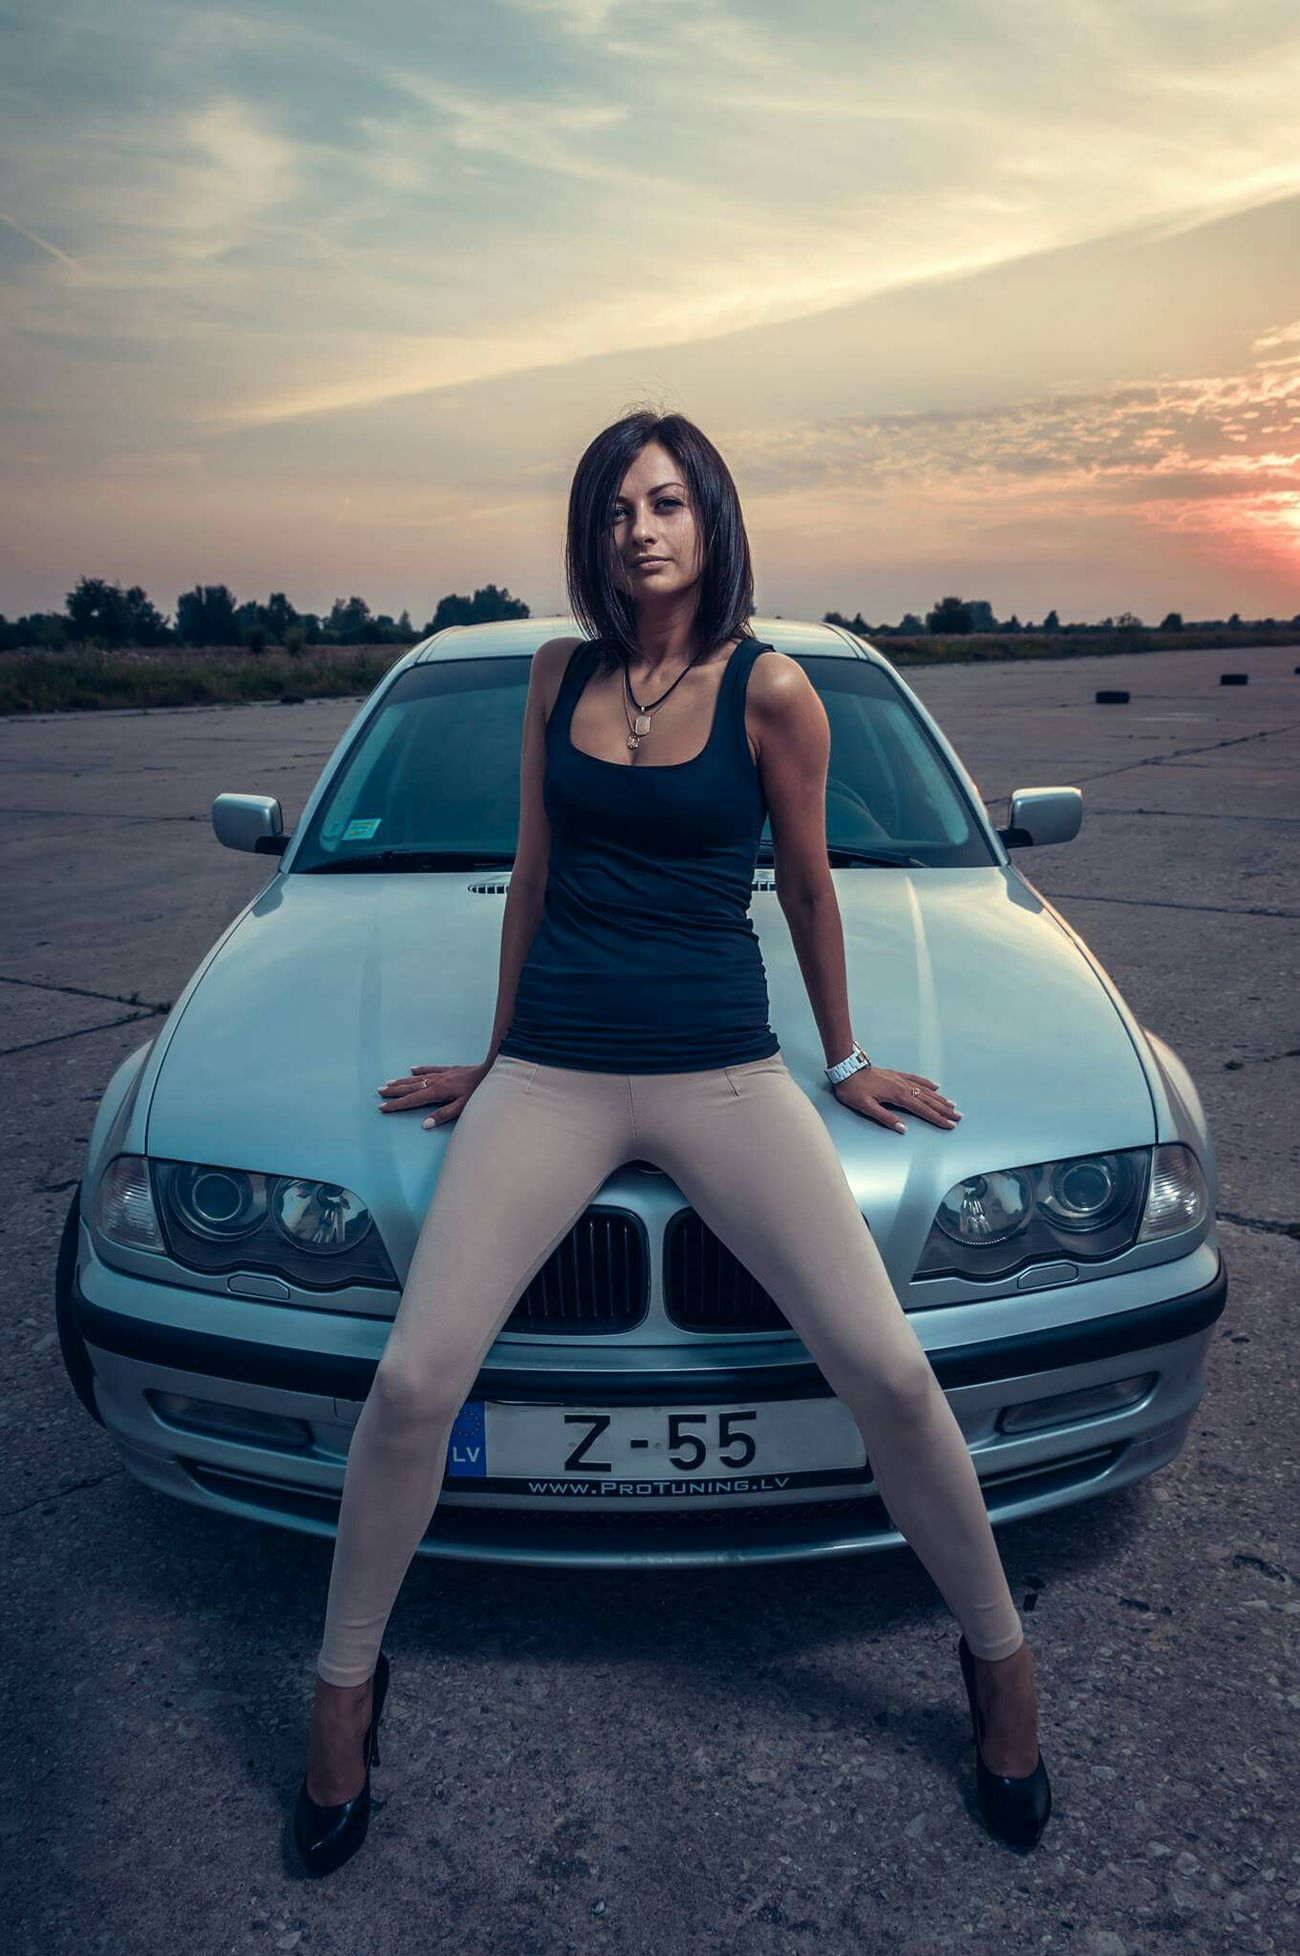 Taking Photos PhotoIF Riga Check This Out Streetphoto Bmw Car Model Having Funn